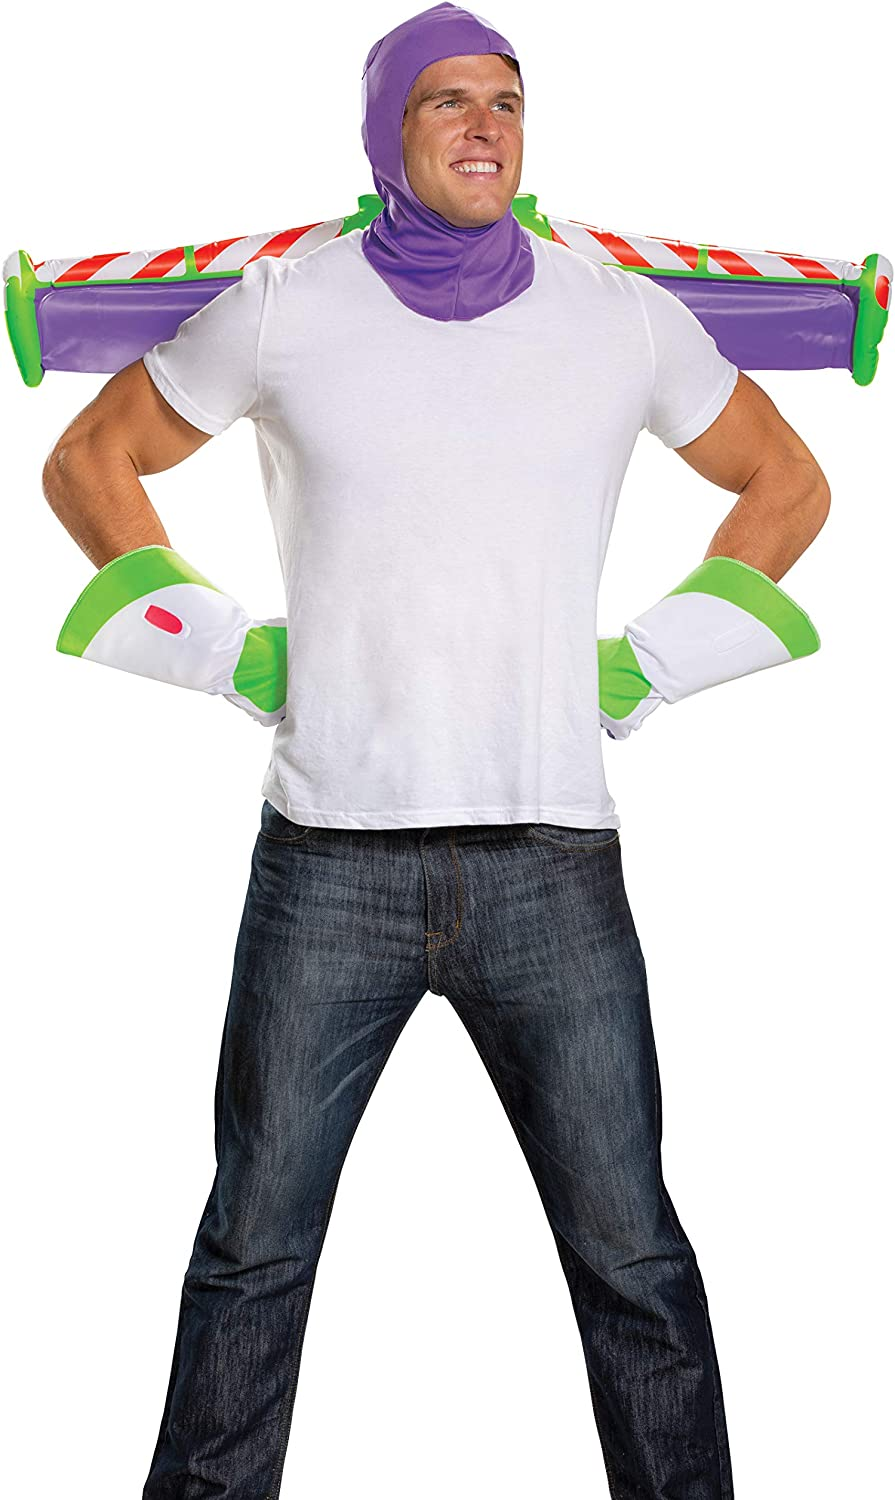 Disguise 198458 Toy Story- Buzz Lightyear Adult Costume Kit ...